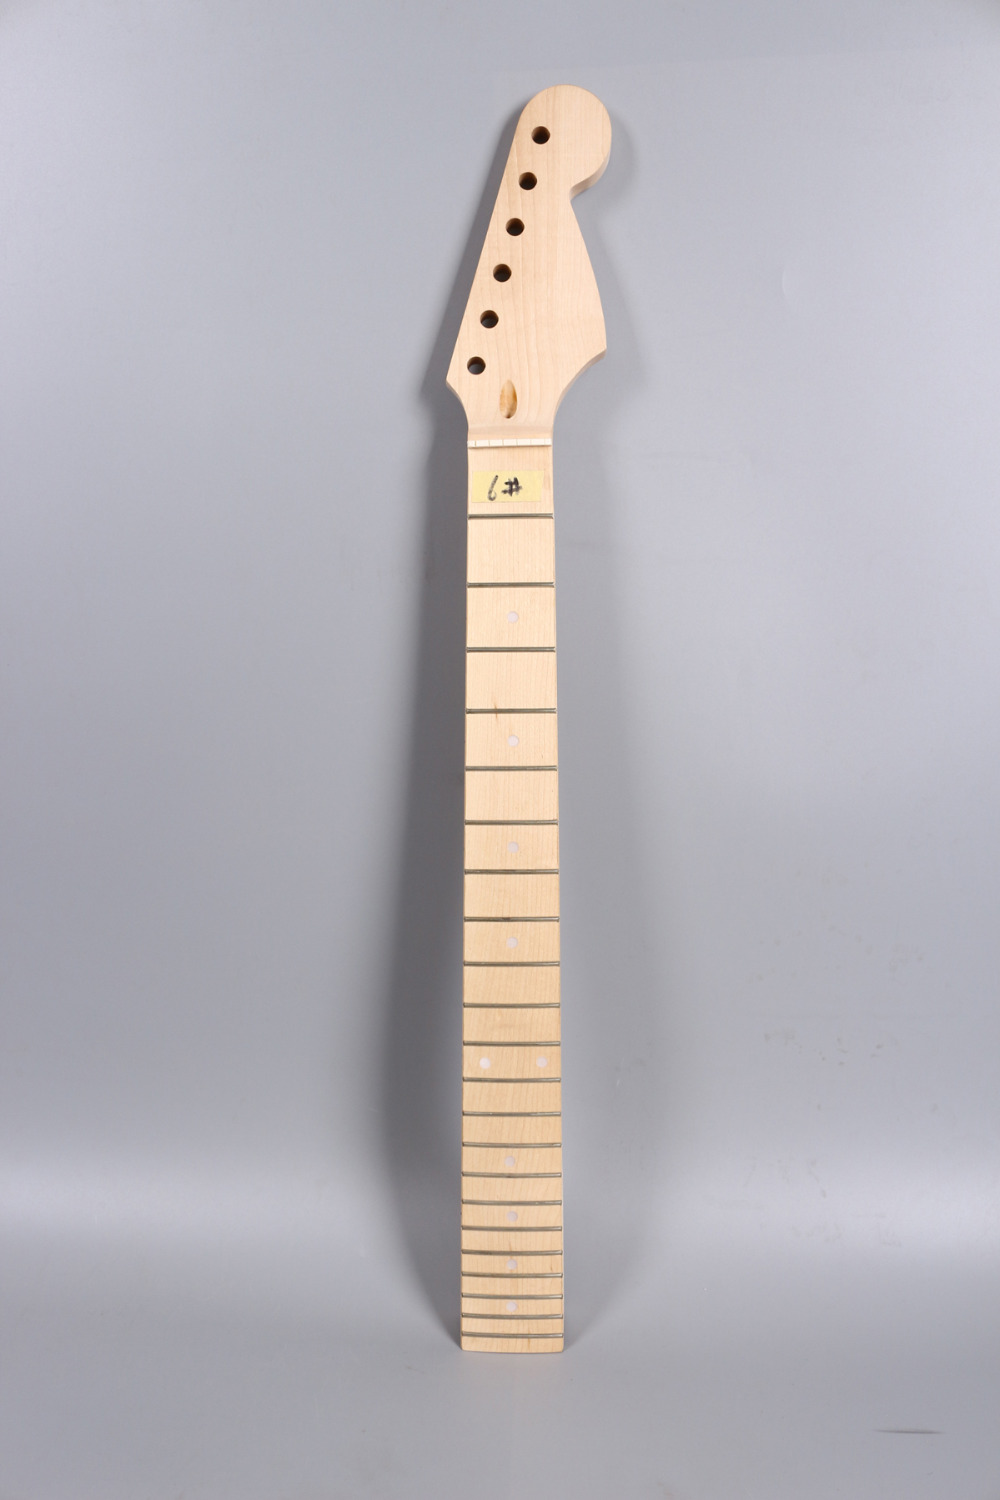 electric guitar neck maple and maple wood fretboard 22 fret 25 5 no inlay nut width 43mm heel. Black Bedroom Furniture Sets. Home Design Ideas